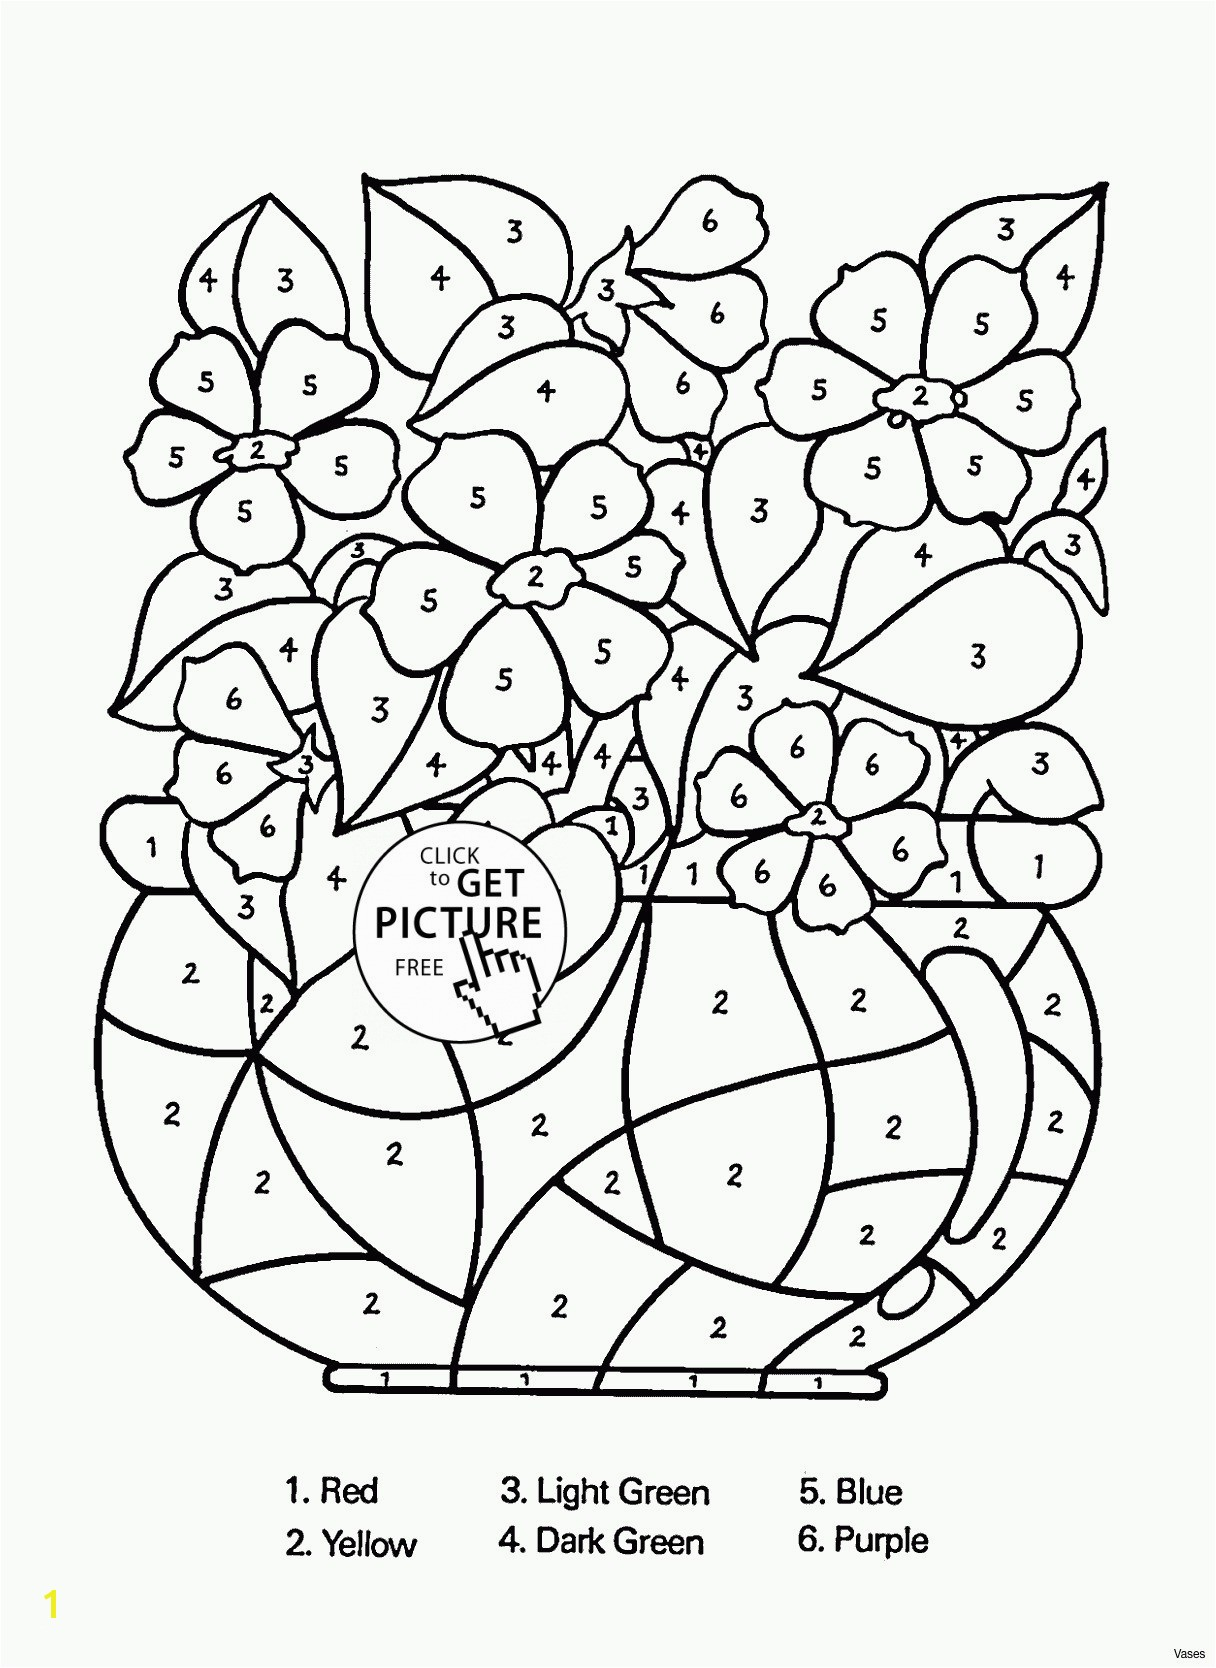 Full Size of Coloring Coloring Worksheets For Kids Lovely Printable Kids Coloring Pages Fresh Printable